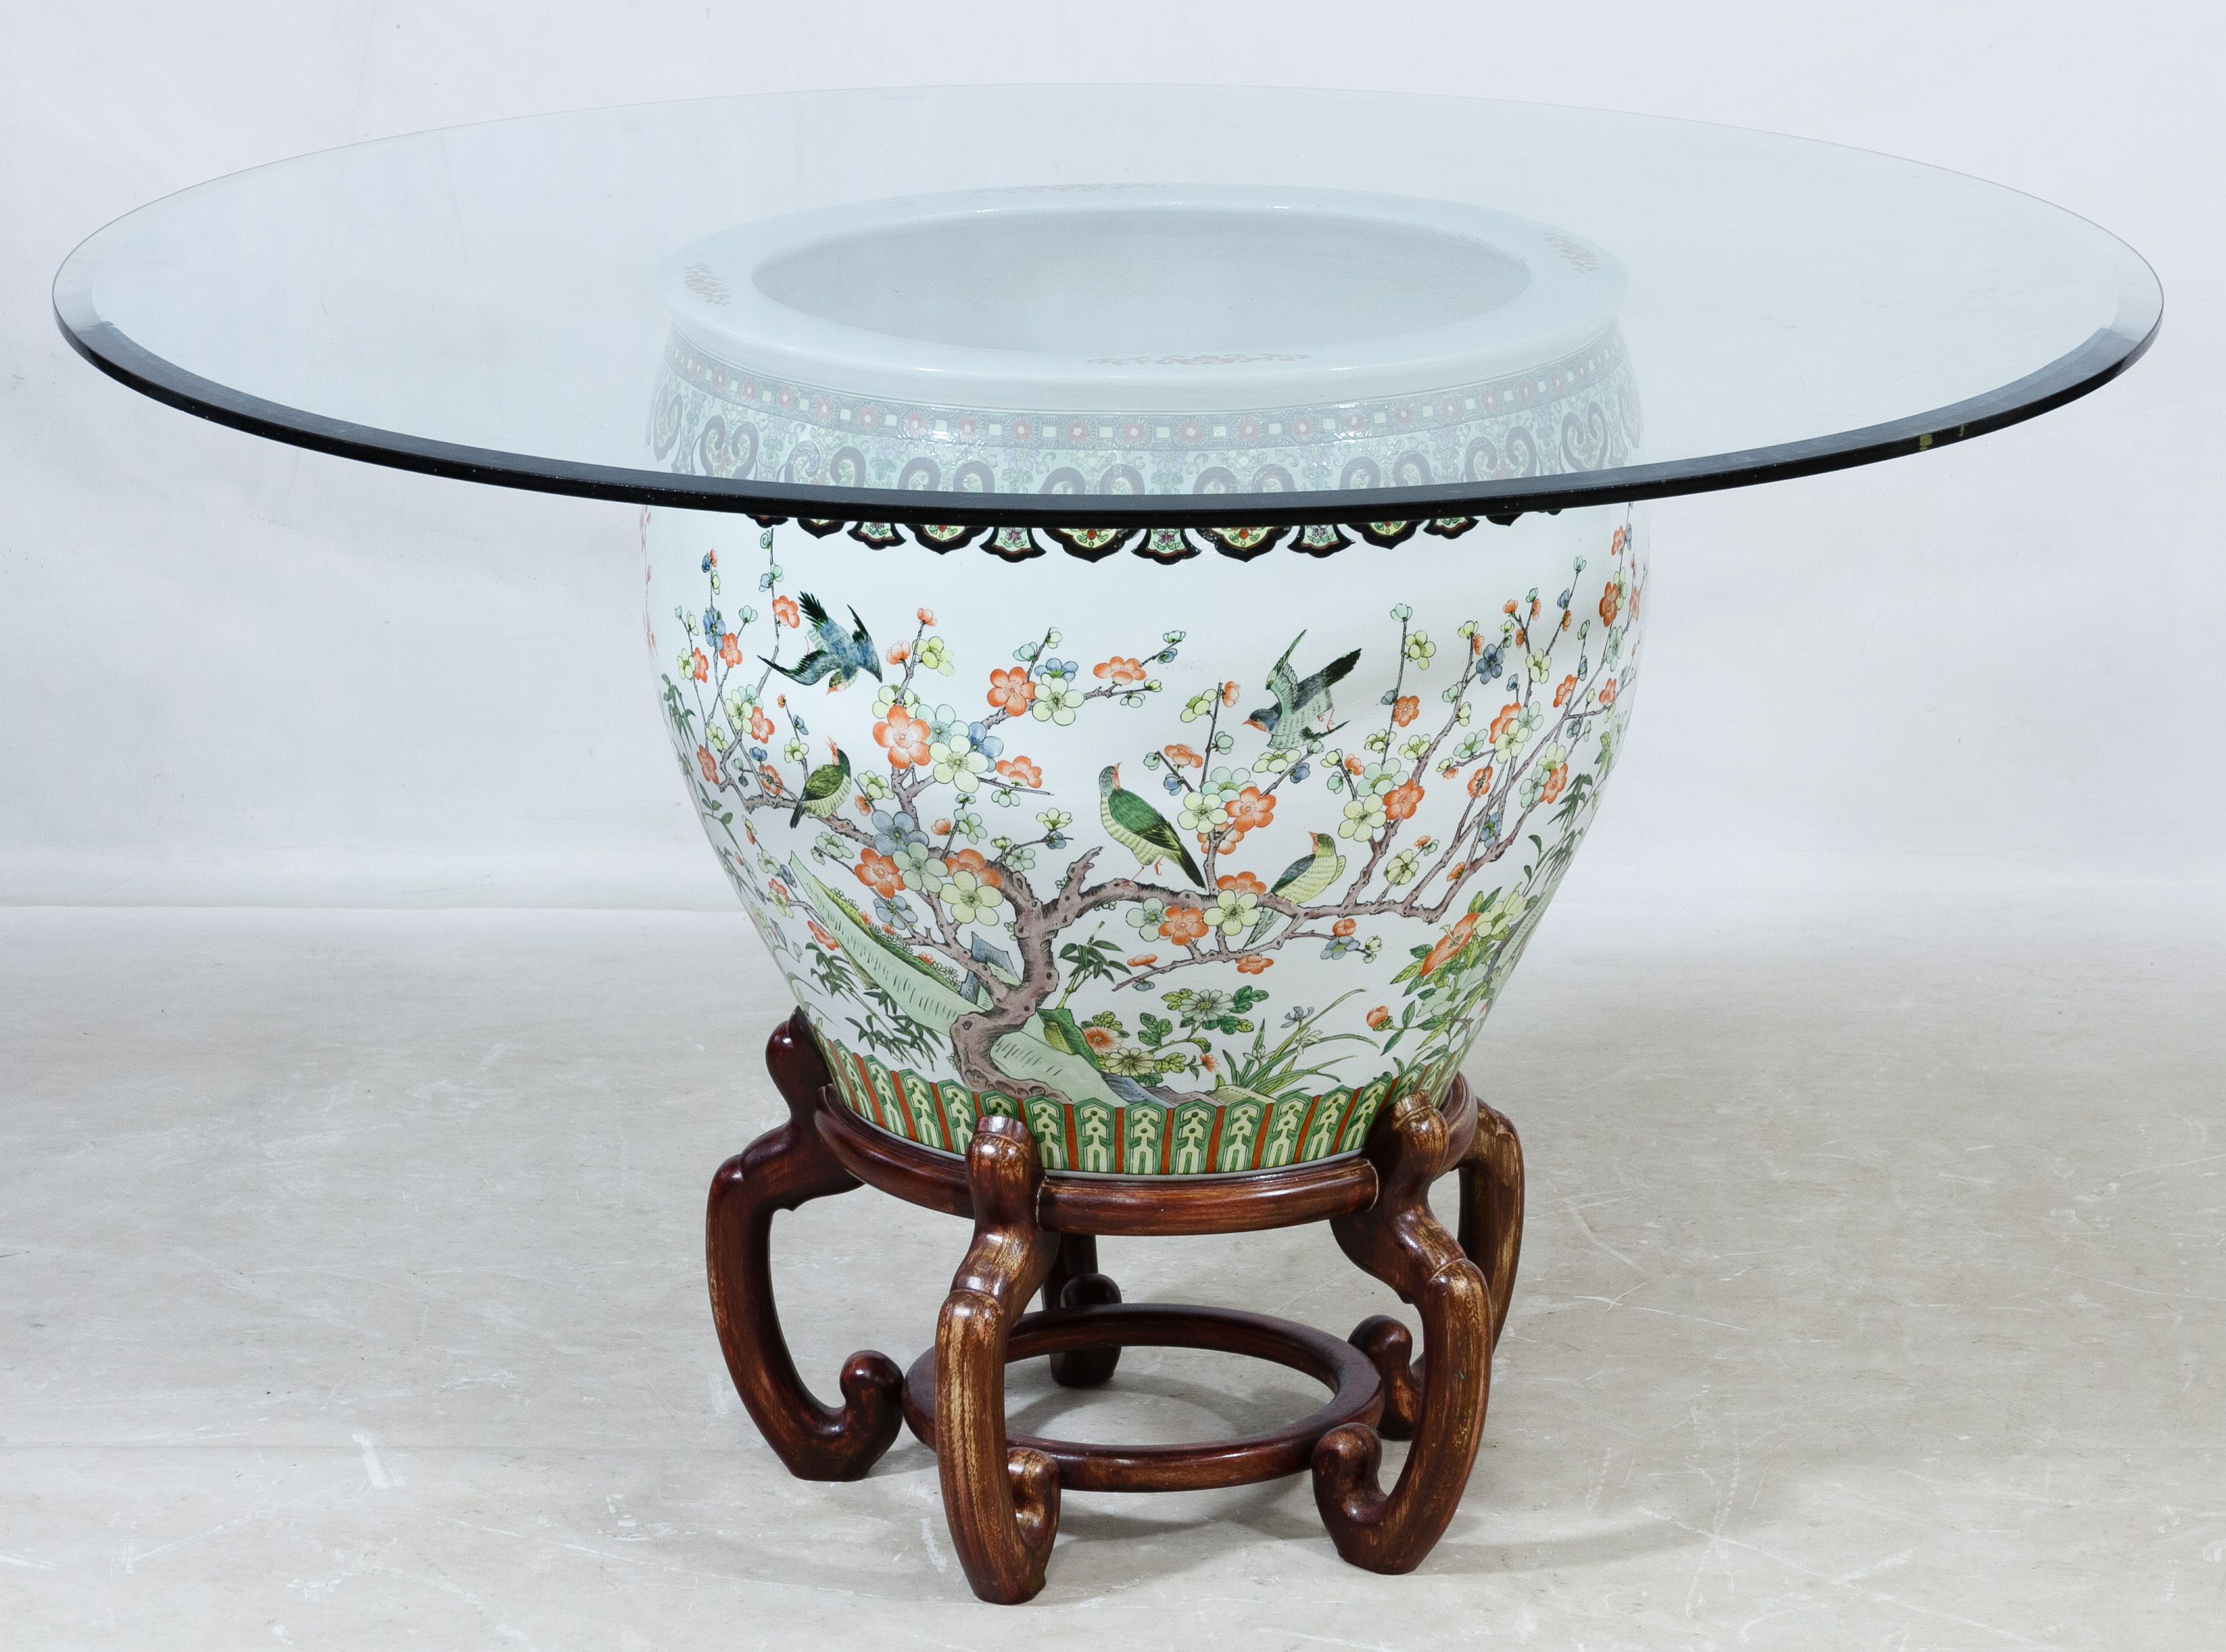 Asian Style Fish Bowl And Glass Top Coffee Table Antique Coffee Tables Coffee Table Pictures Asian Coffee Table [ 2389 x 3219 Pixel ]